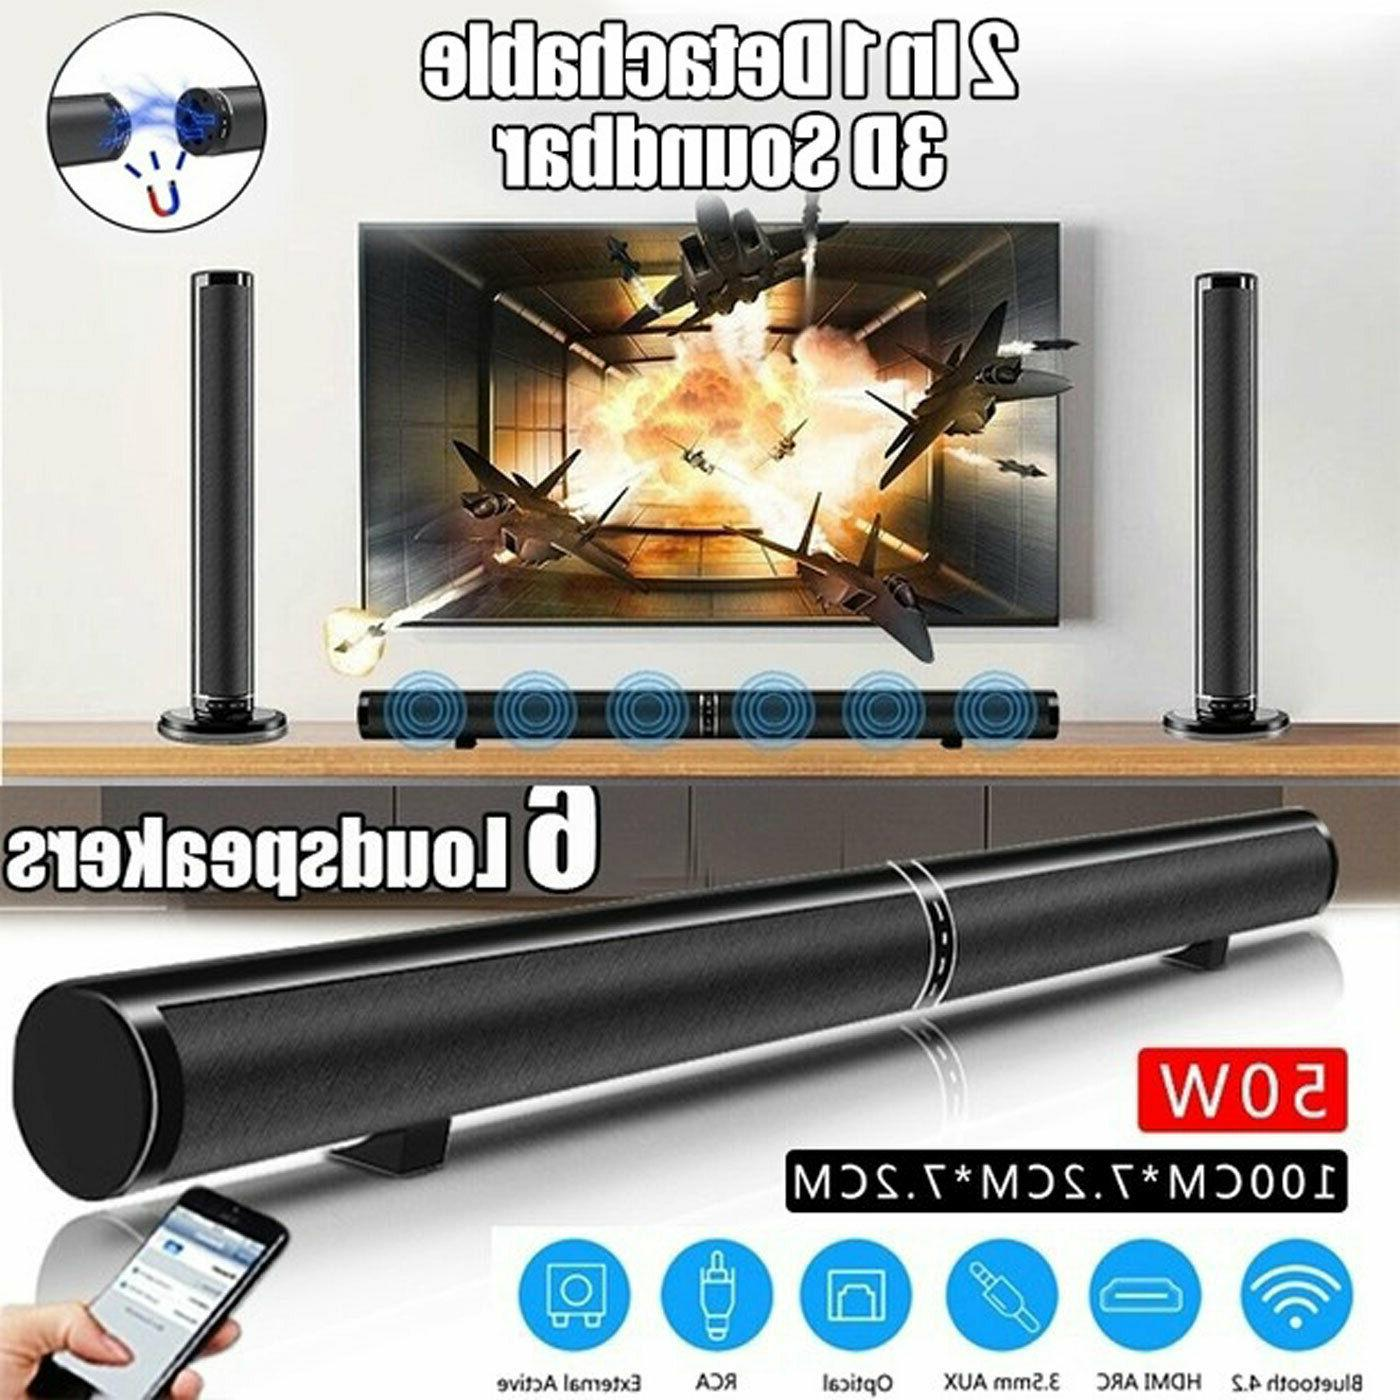 TV Home Theater SOUND BAR Stereo 3D Surround Sound Bluetooth